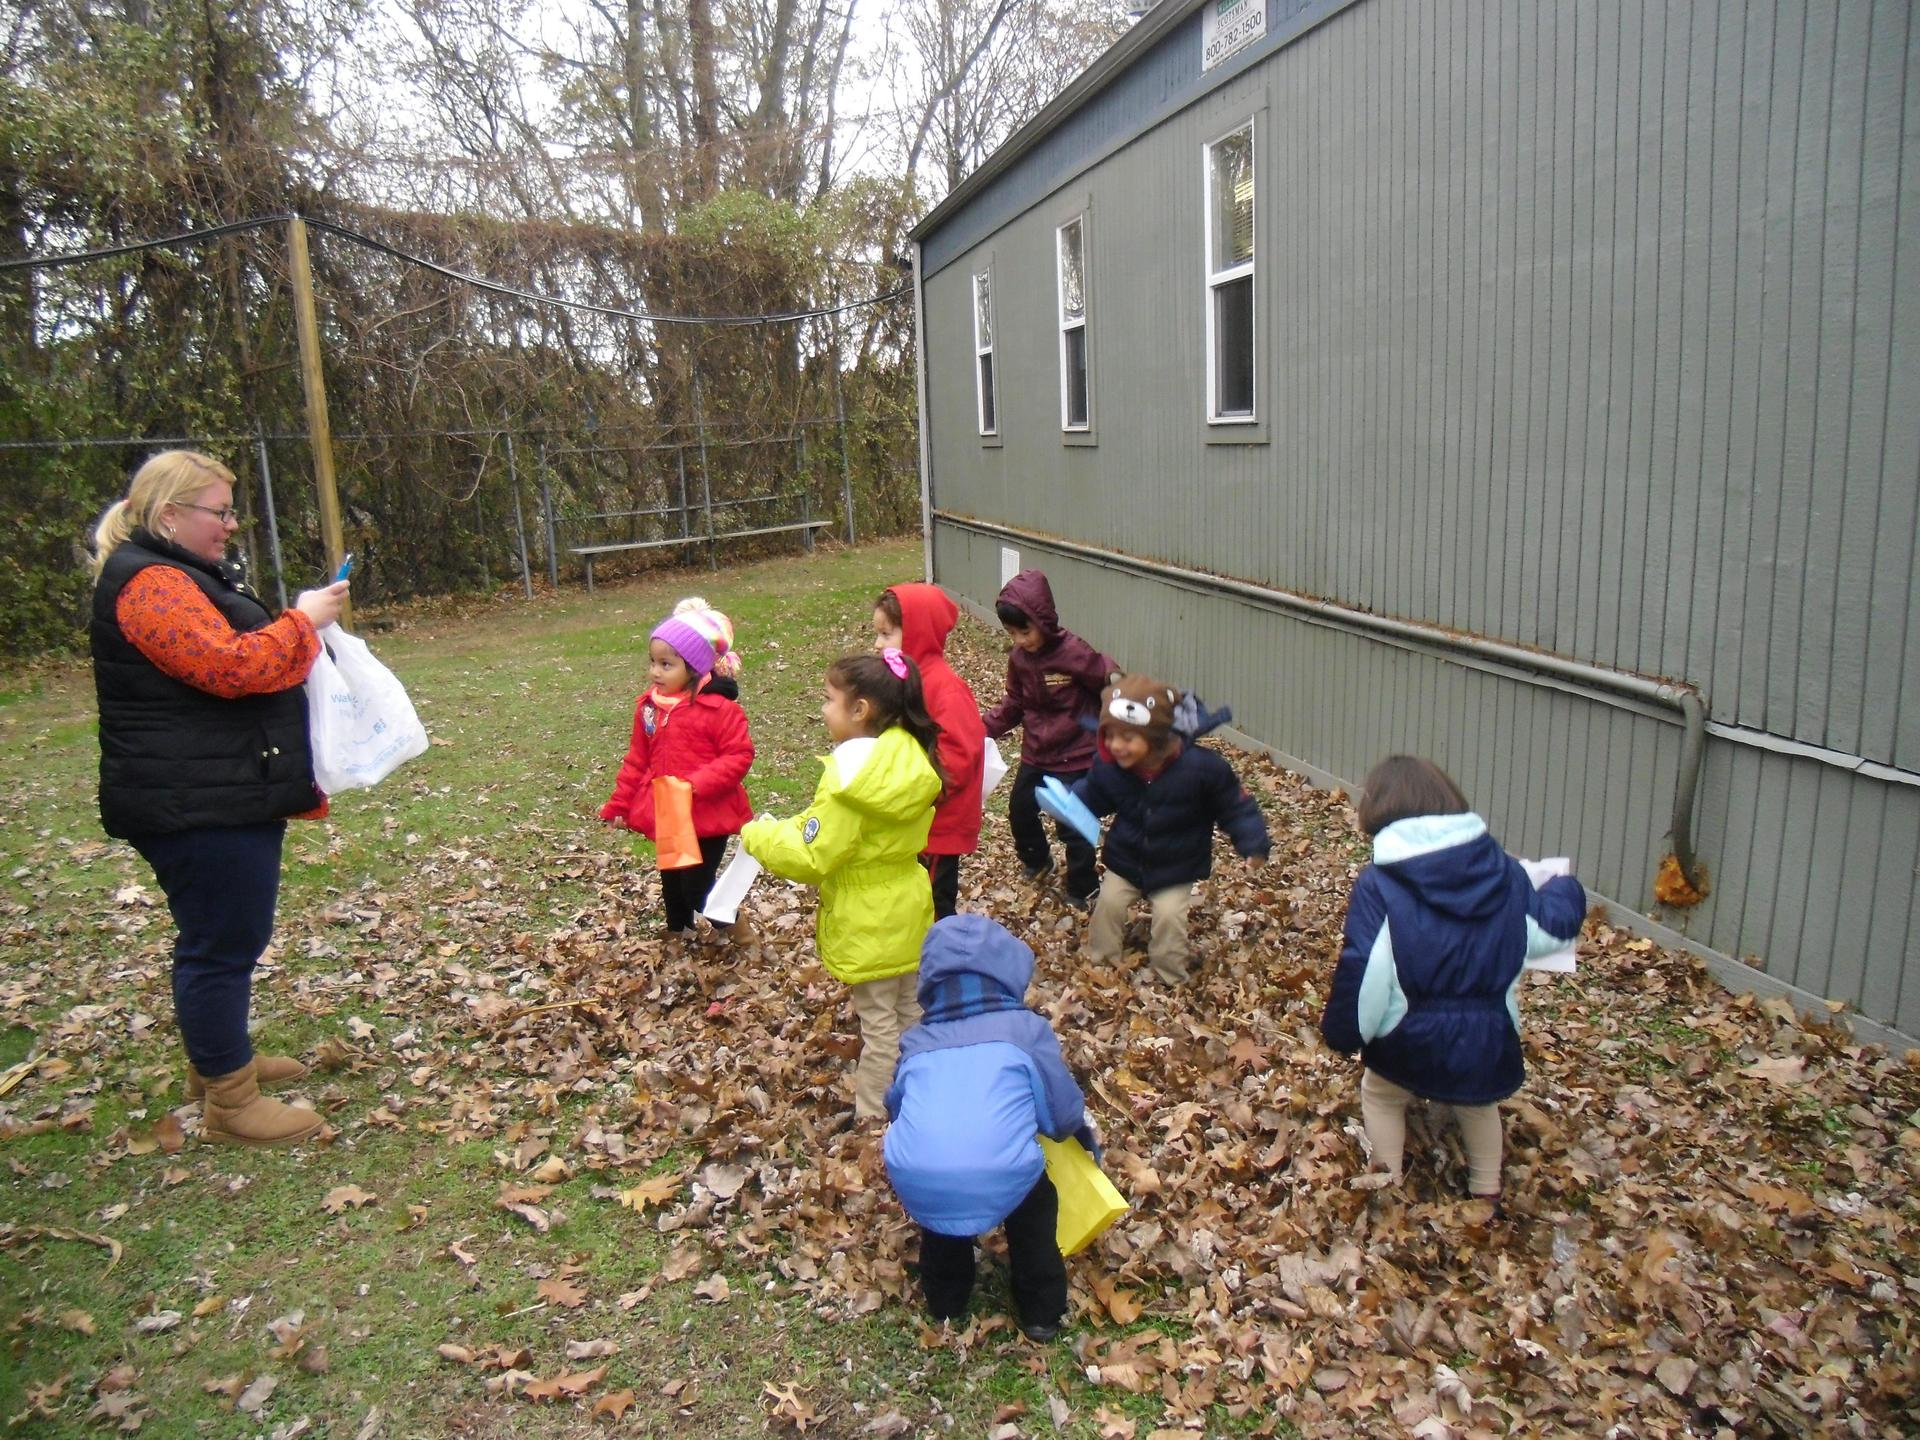 North Bergen Students experiencing nature by touching and seeing leaves with their teacher.